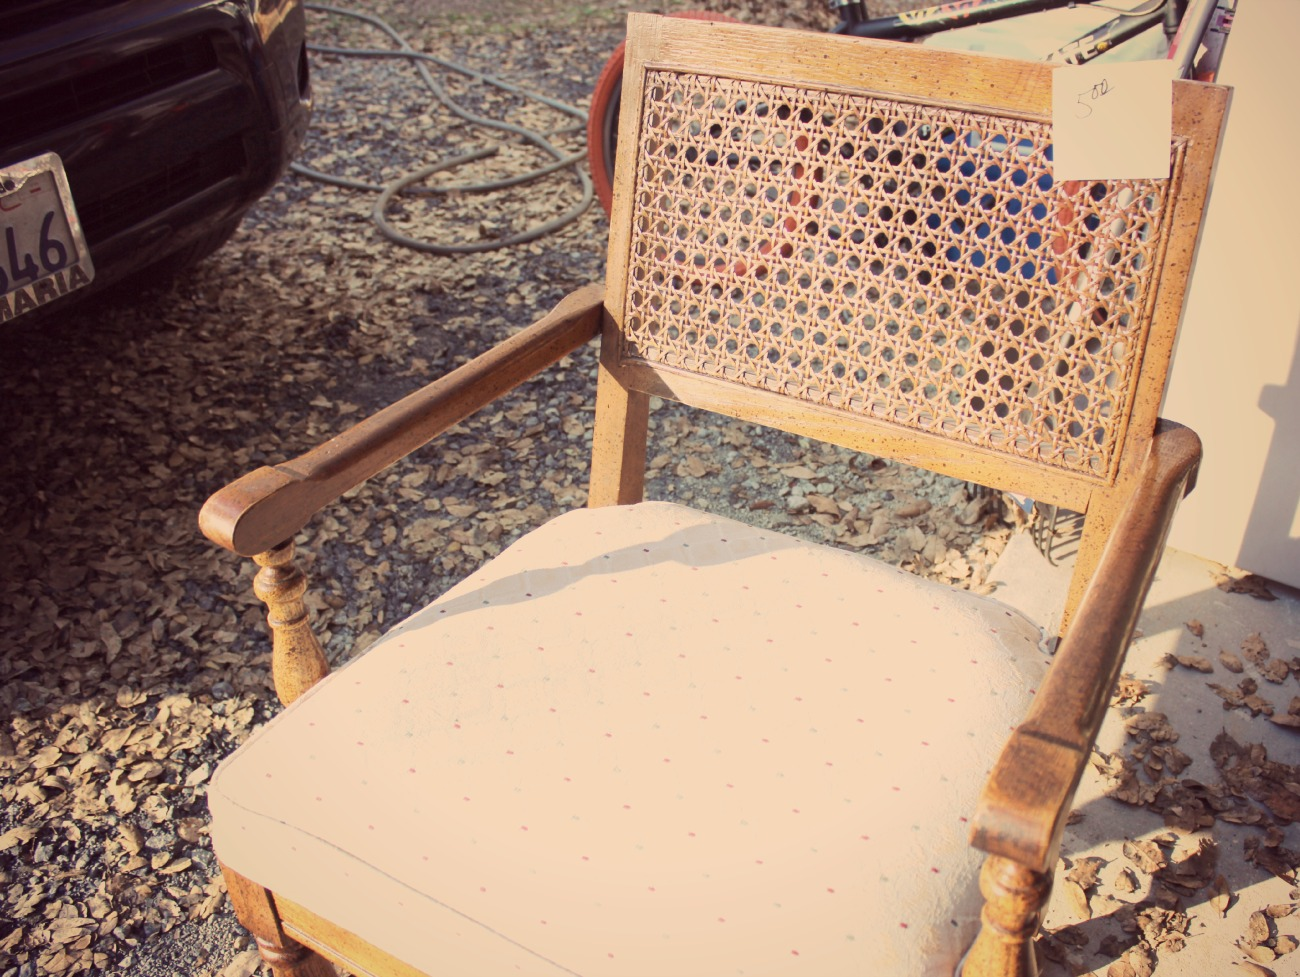 Thrift Store finds wicker cane chair